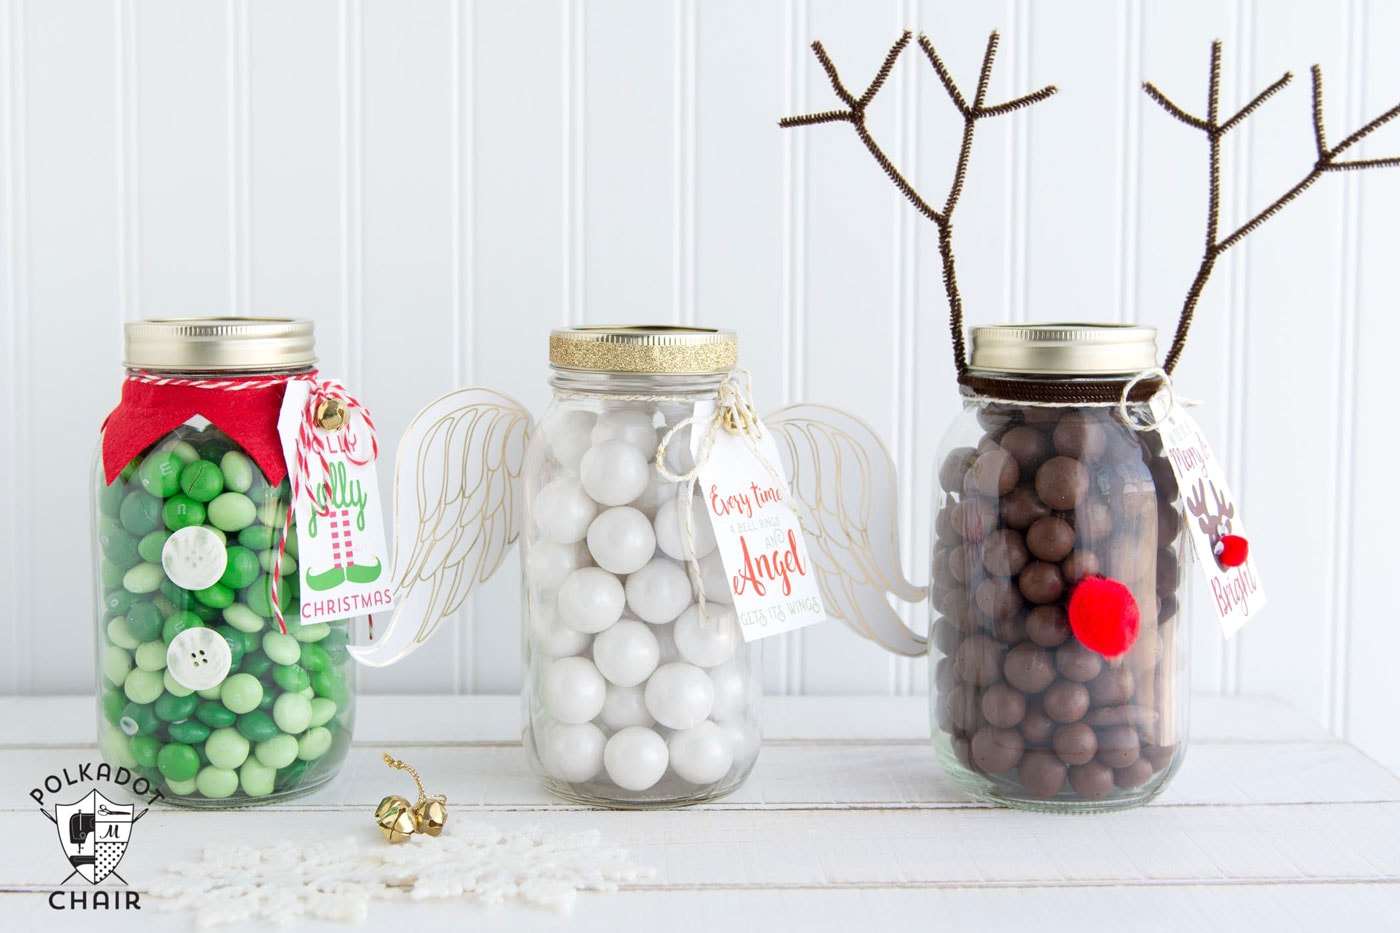 Good news: Our absolute favorite kitchen staple now comes in a variety of super cute present-worthy options. These Mason jar gift ideas will make any southern belle .